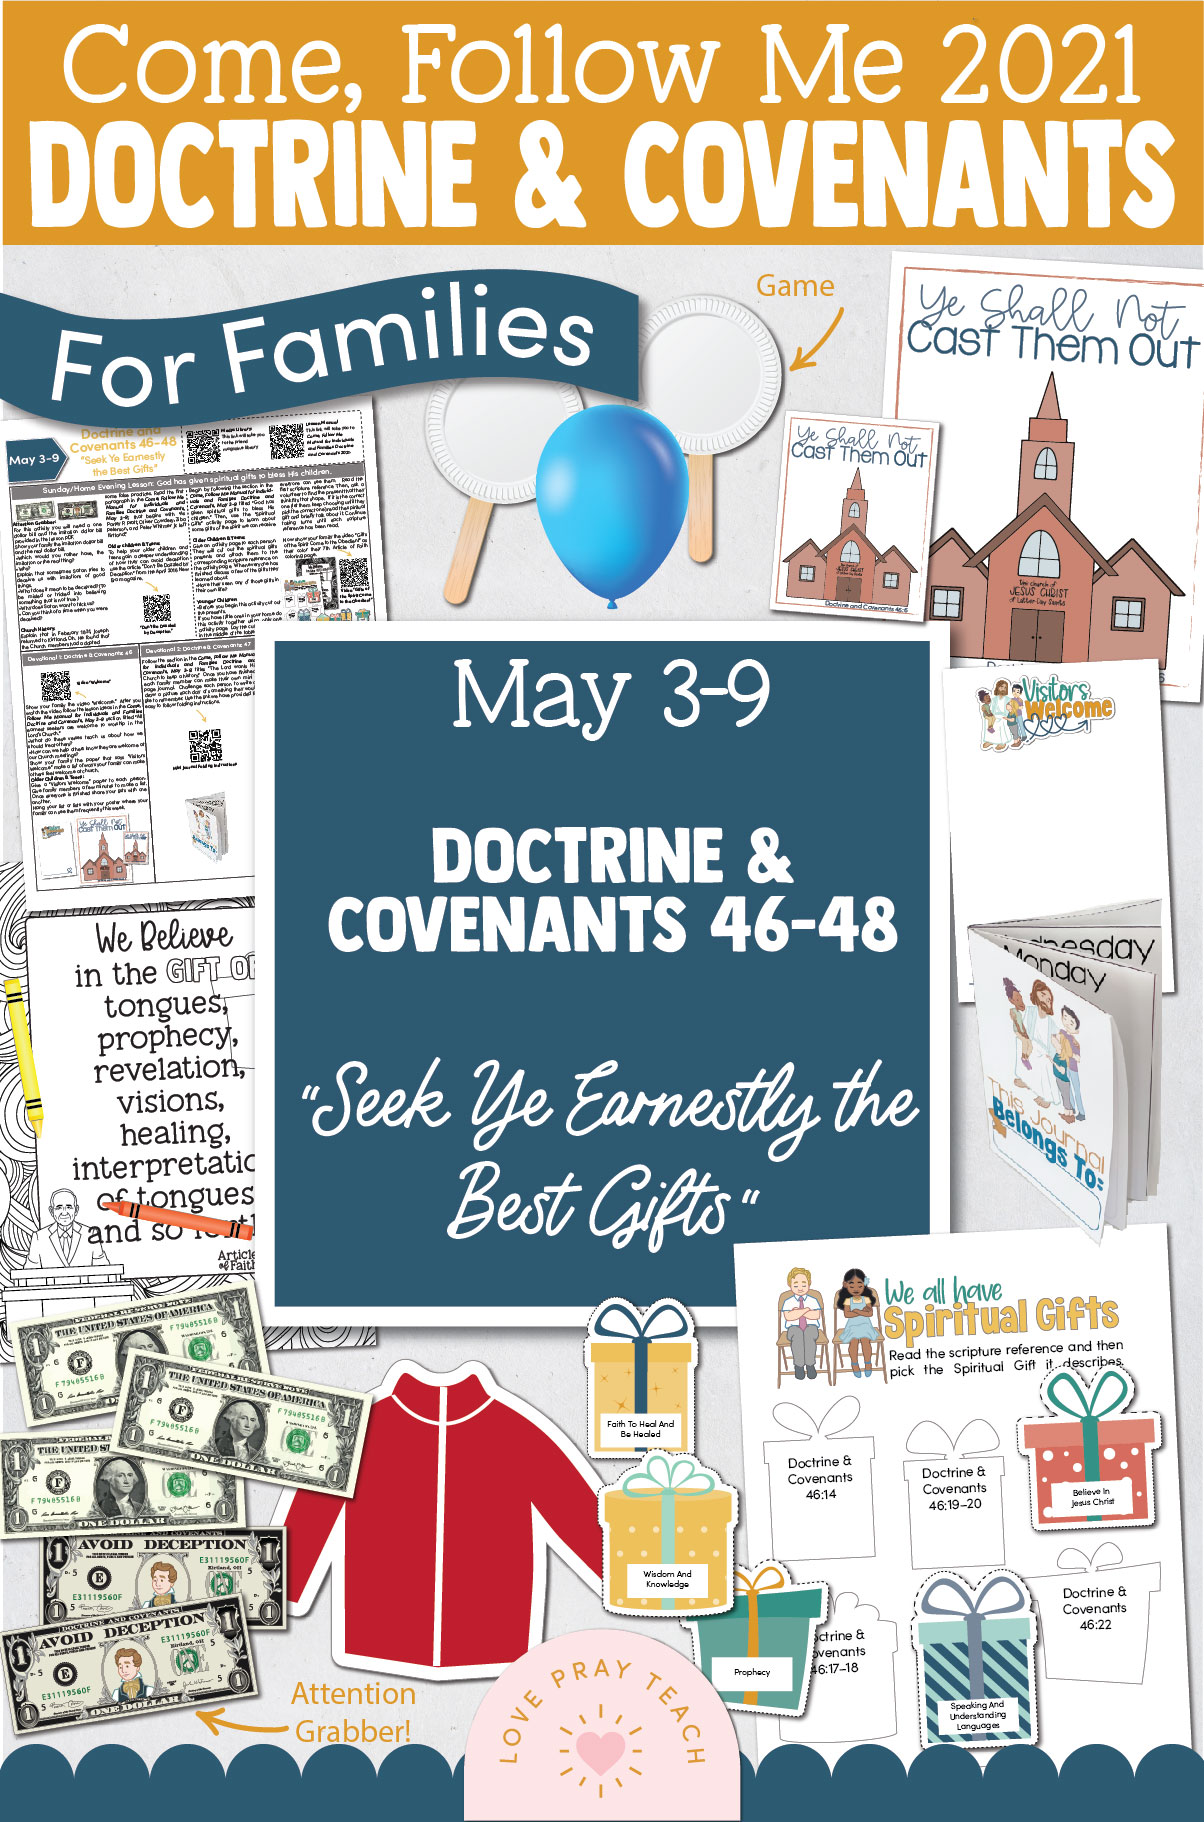 """Come, Follow Me—For Individuals and Families: Doctrine And Covenants 2021, May Week 2 Doctrine and Covenants 46-48: May 3-9, """"Seek Ye Earnestly the Best Gifts"""""""